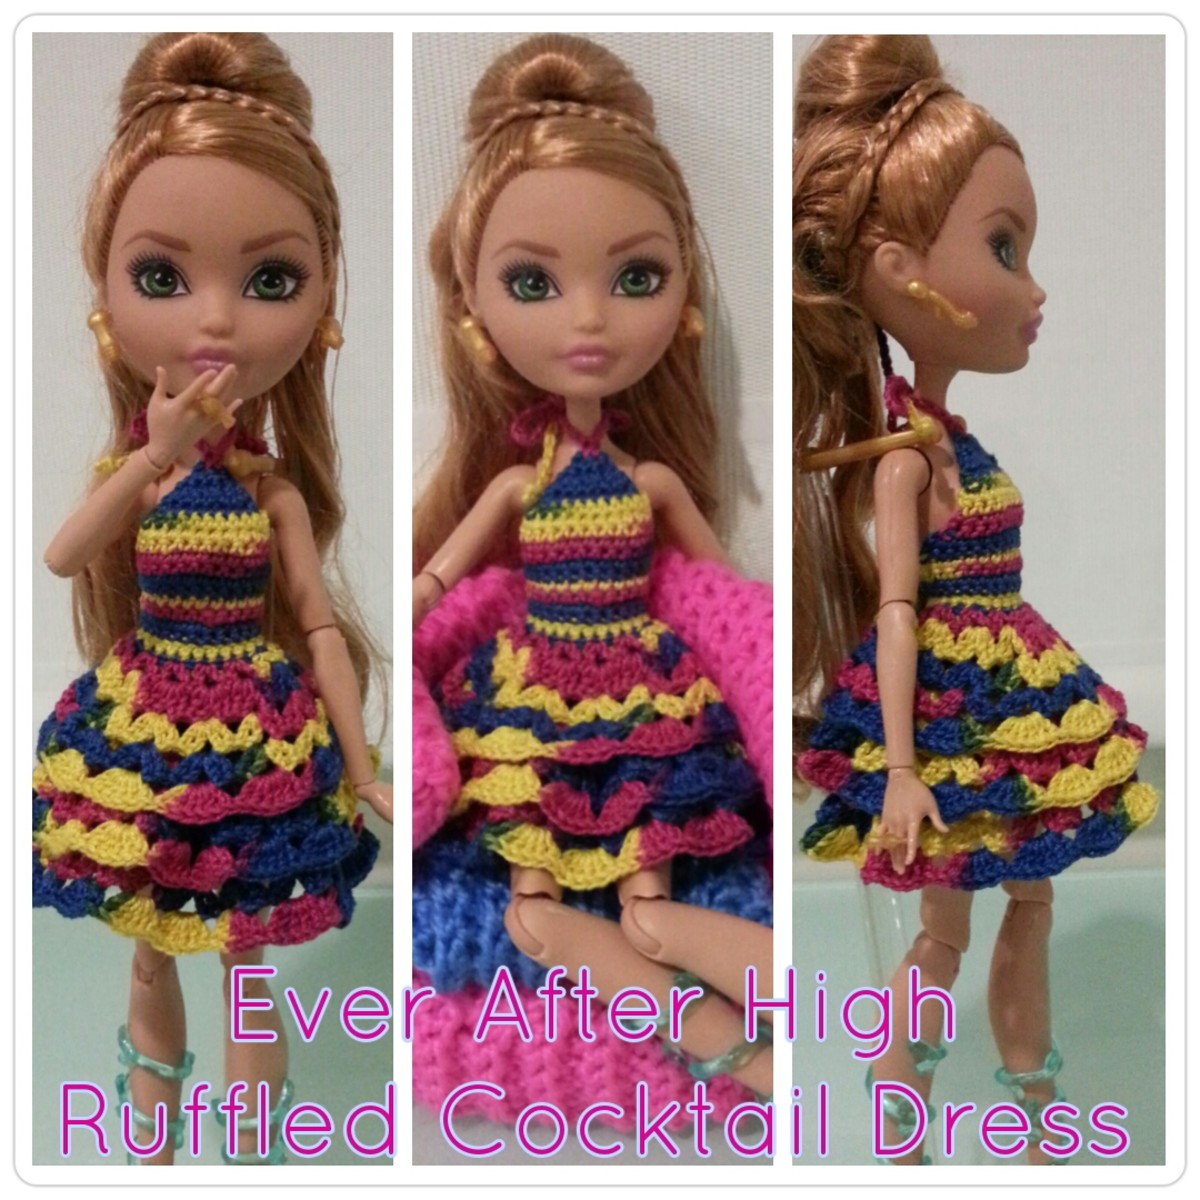 Ever After High Ruffled Cocktail Dress (Free Crochet Pattern)